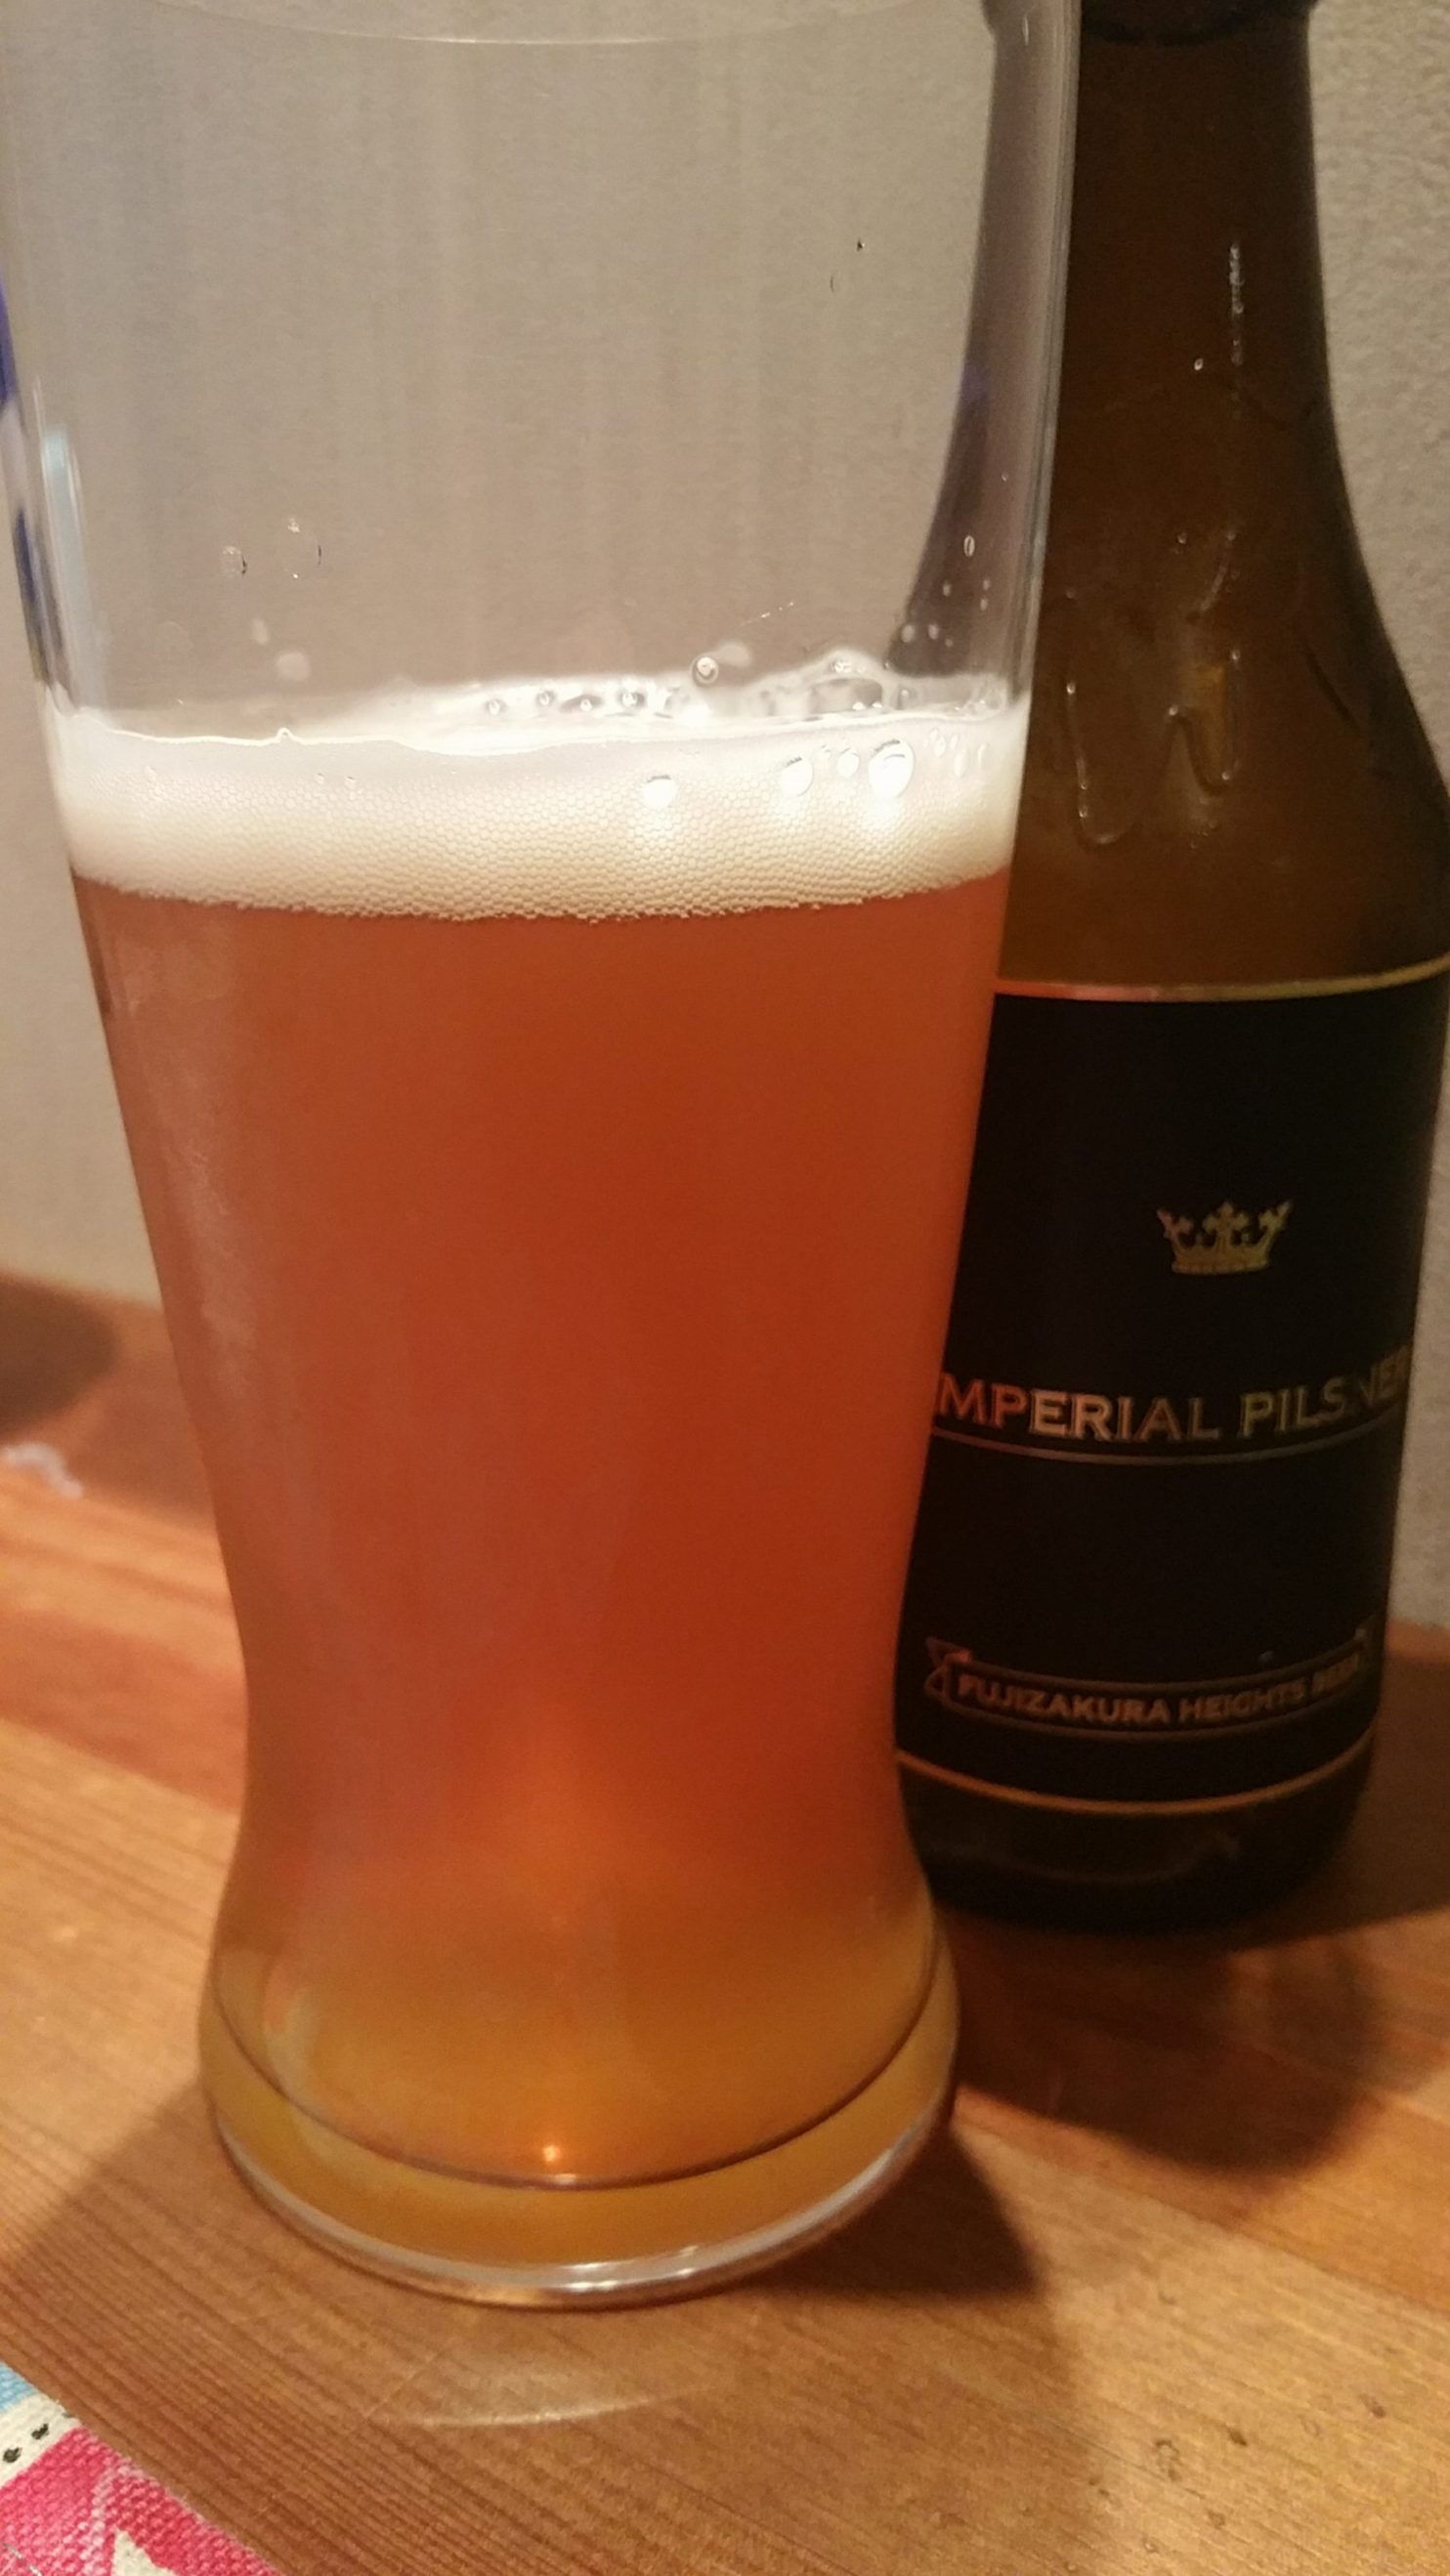 Fujizakura Heights Imperial Pilsner